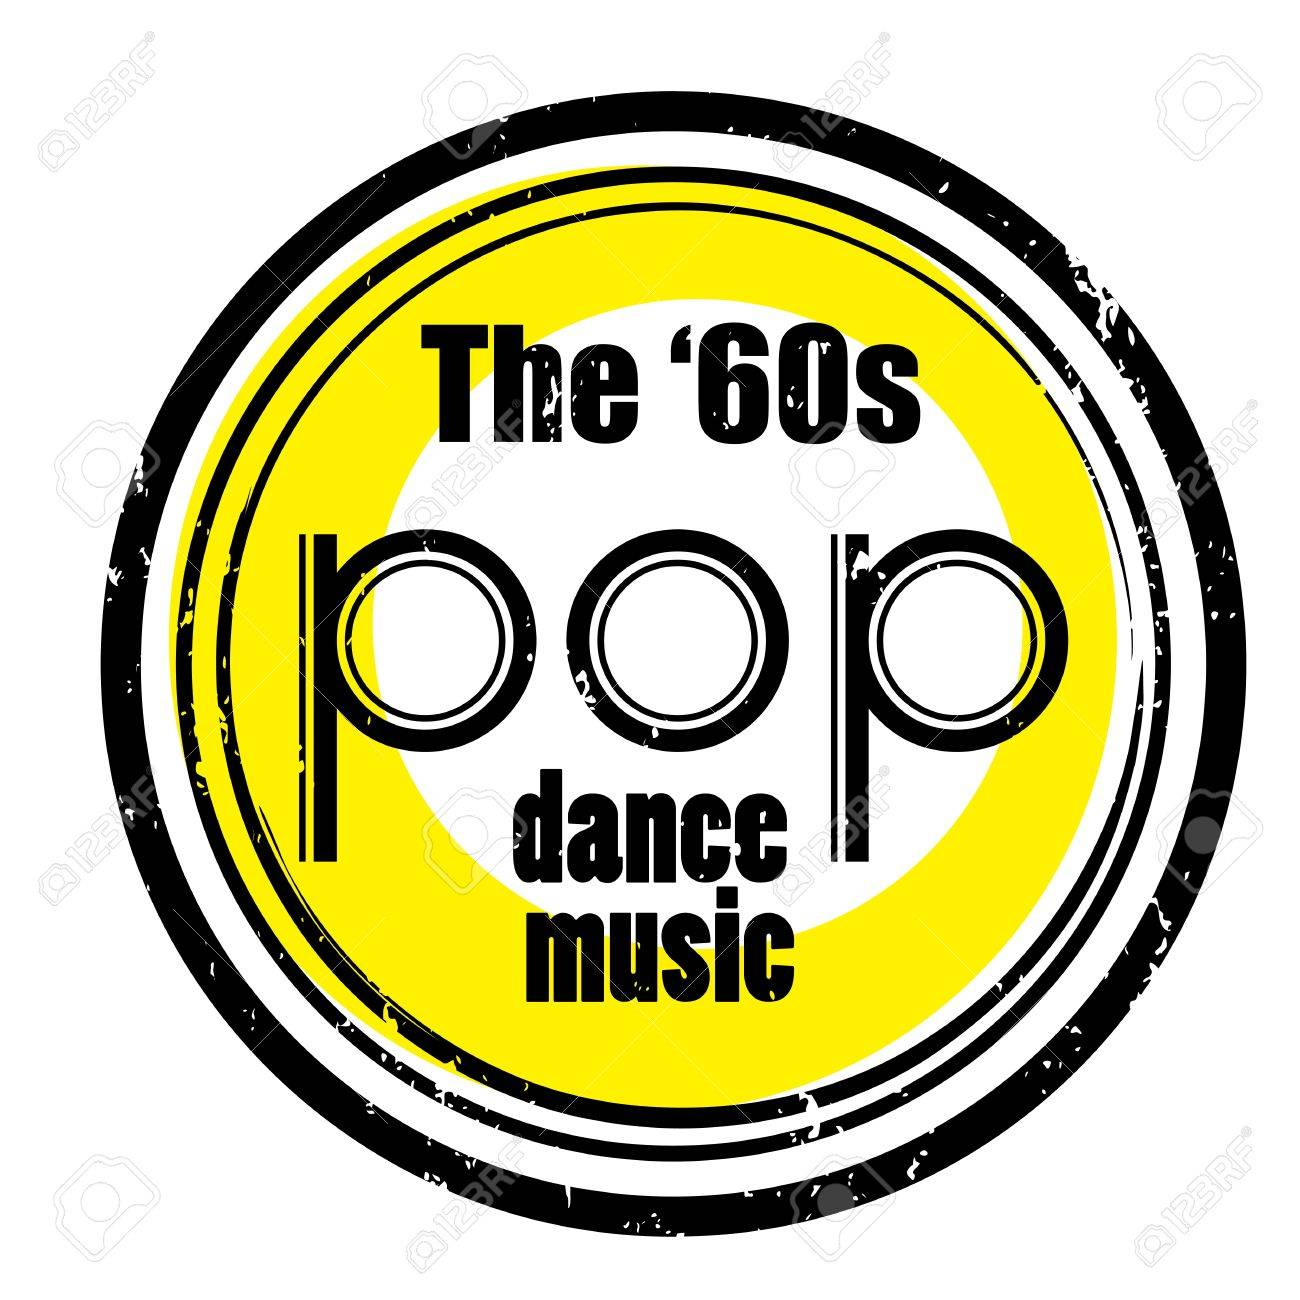 Retro Party Music Stamp For A Night Club Or Bar The Sixties